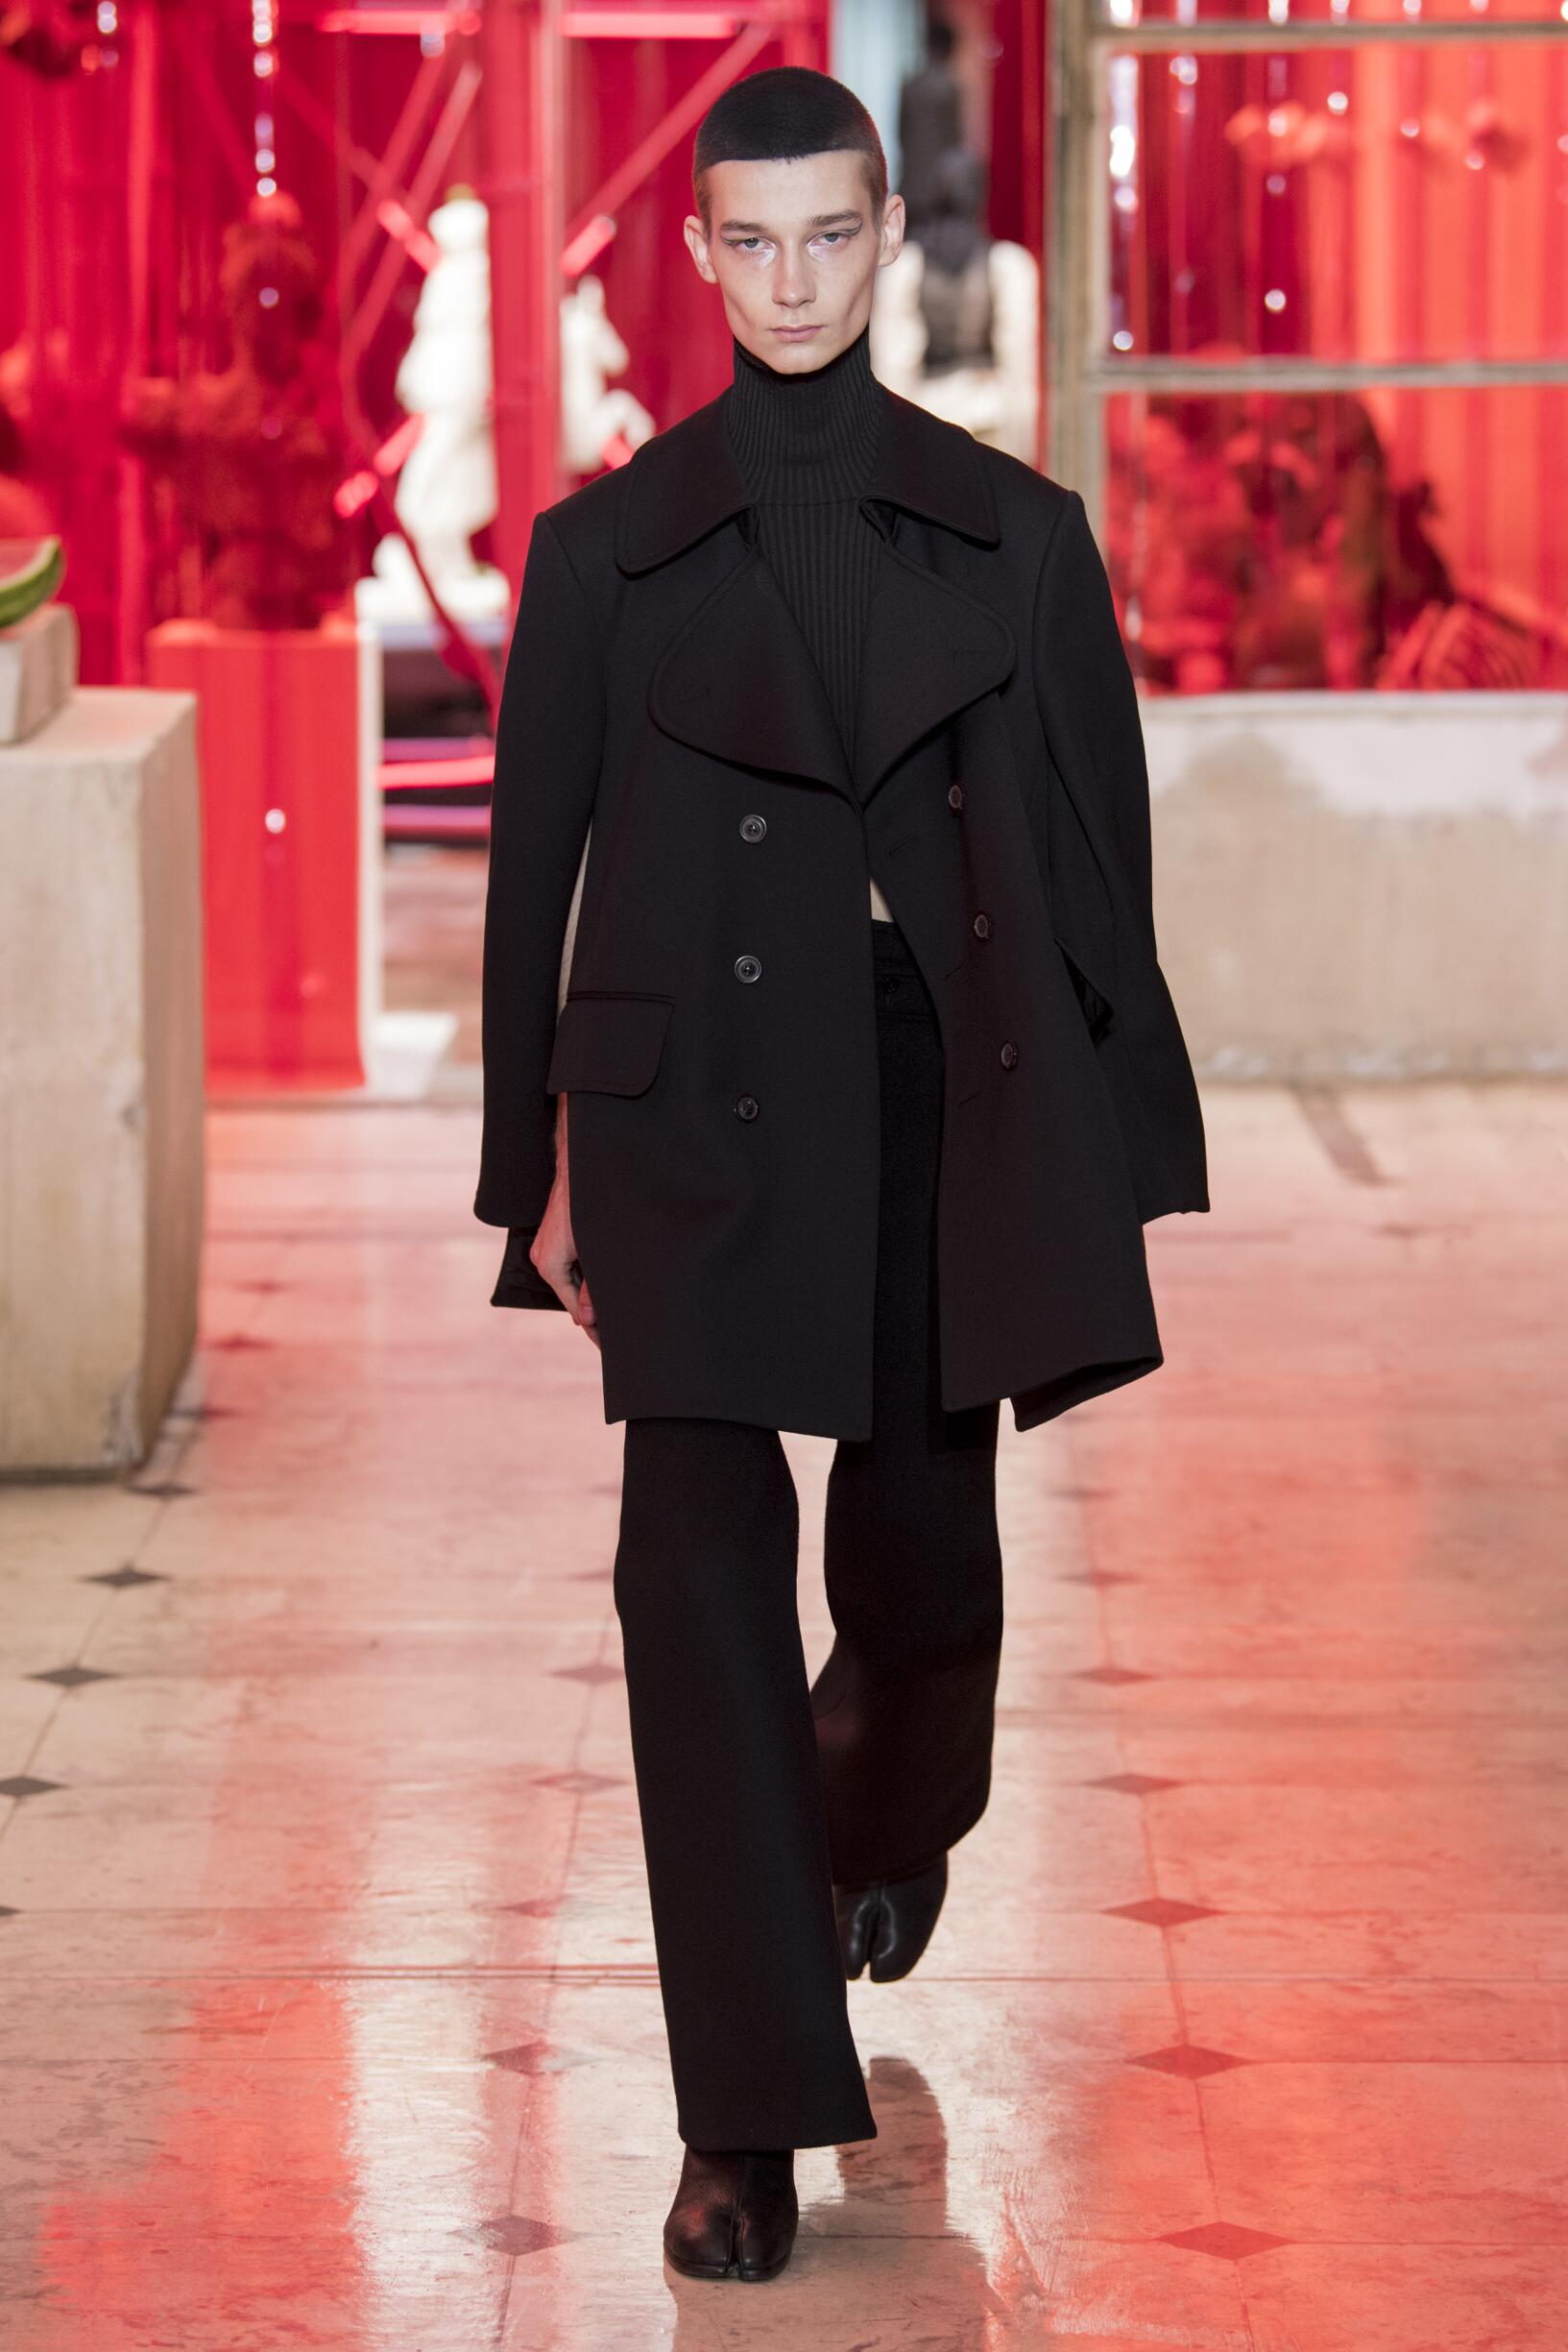 Maison Margiela Spring Summer 2019 Mens Collection Paris Fashion Week